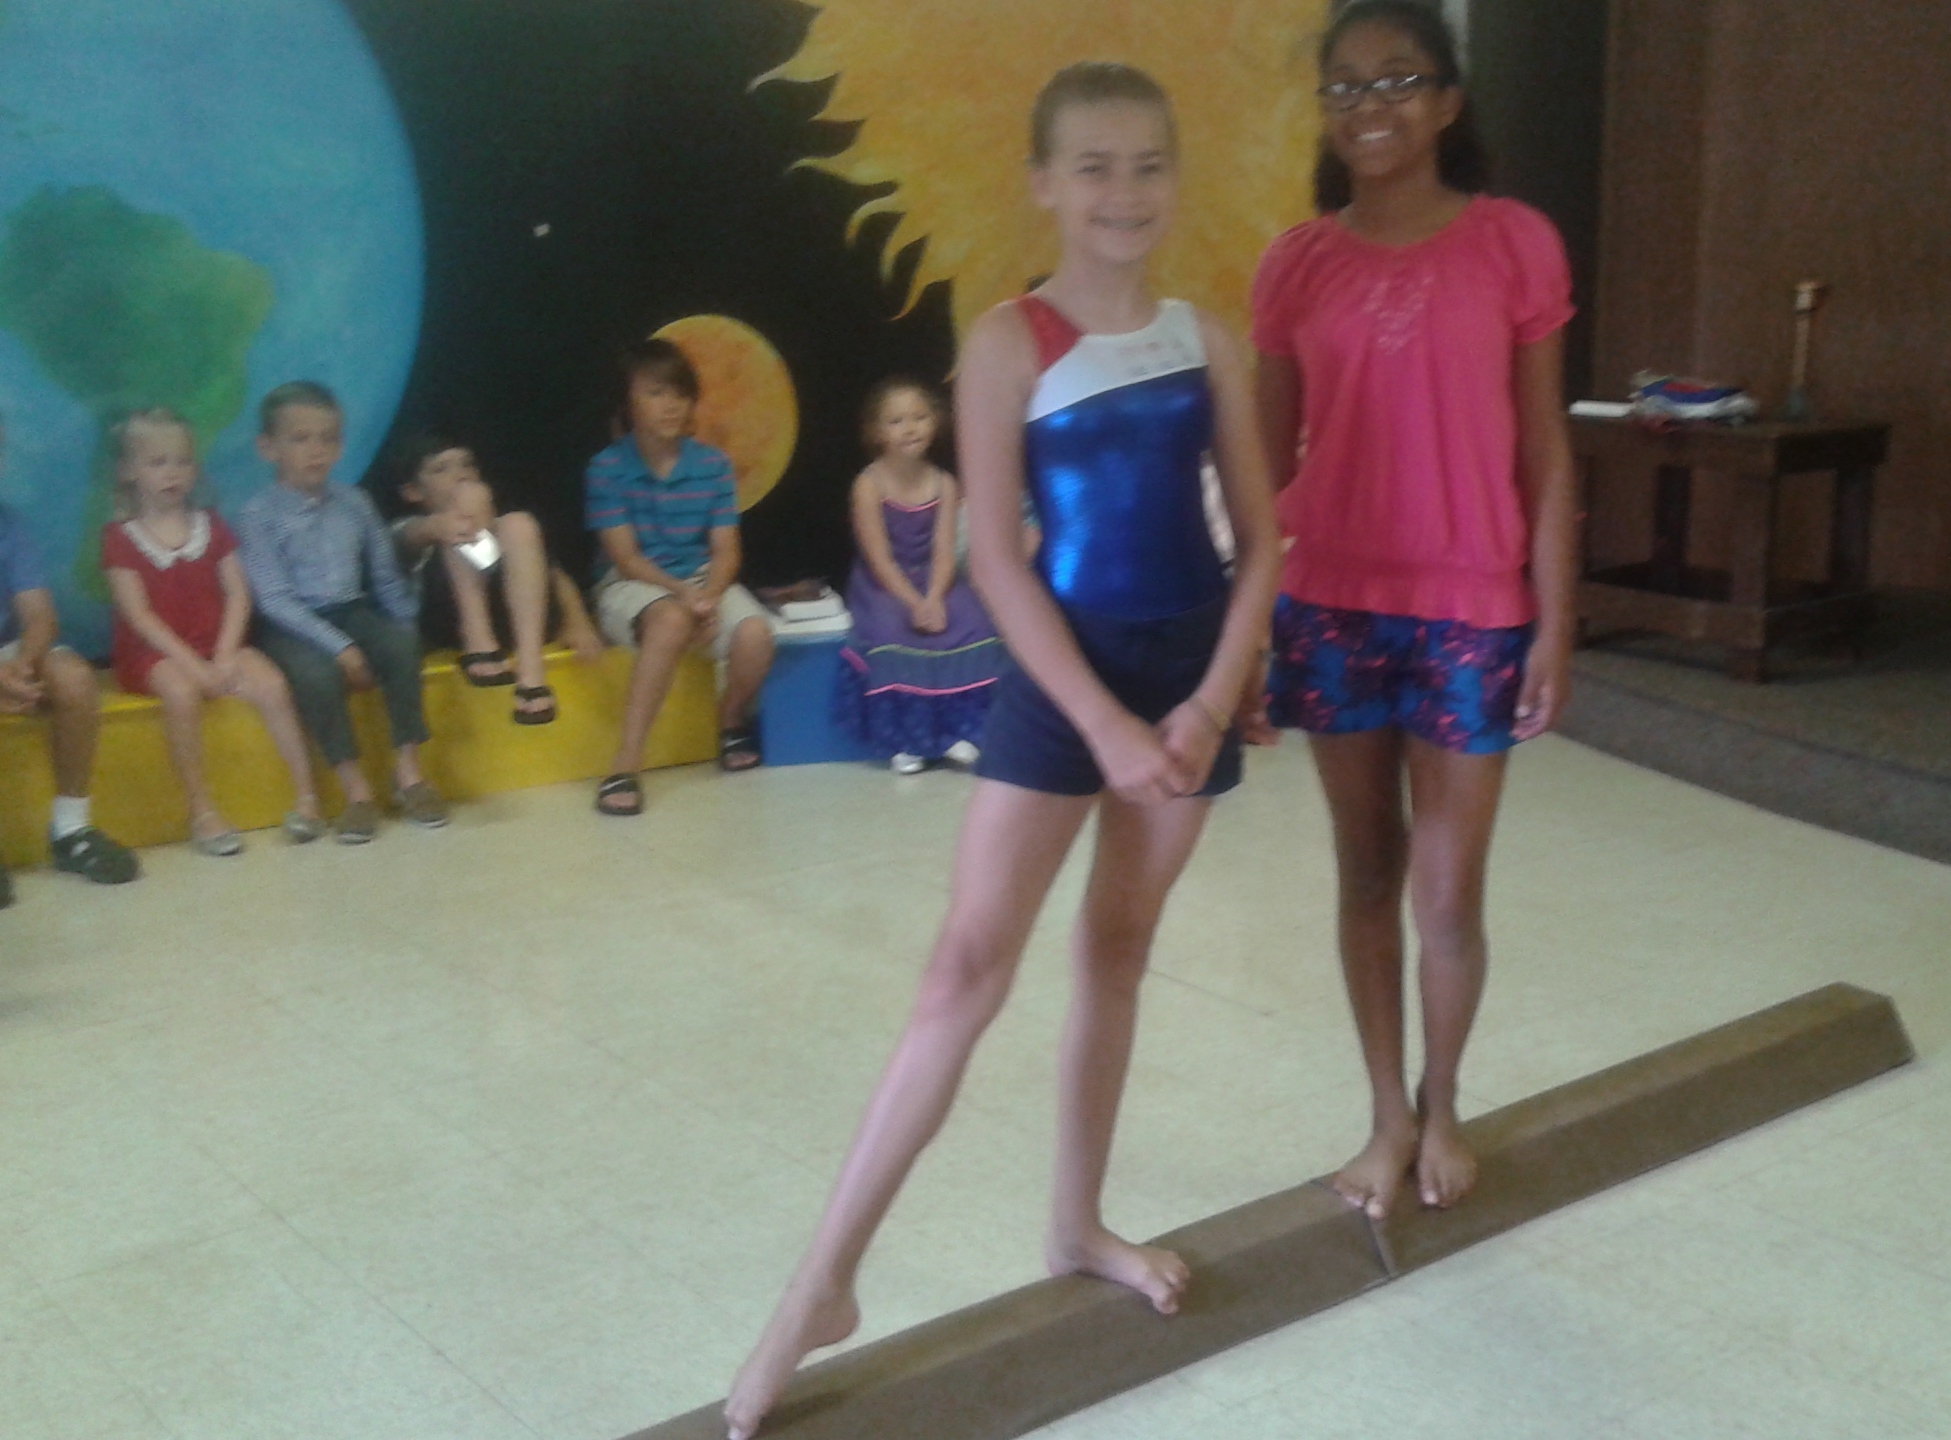 Elena and Anna demonstrated the balance beam.